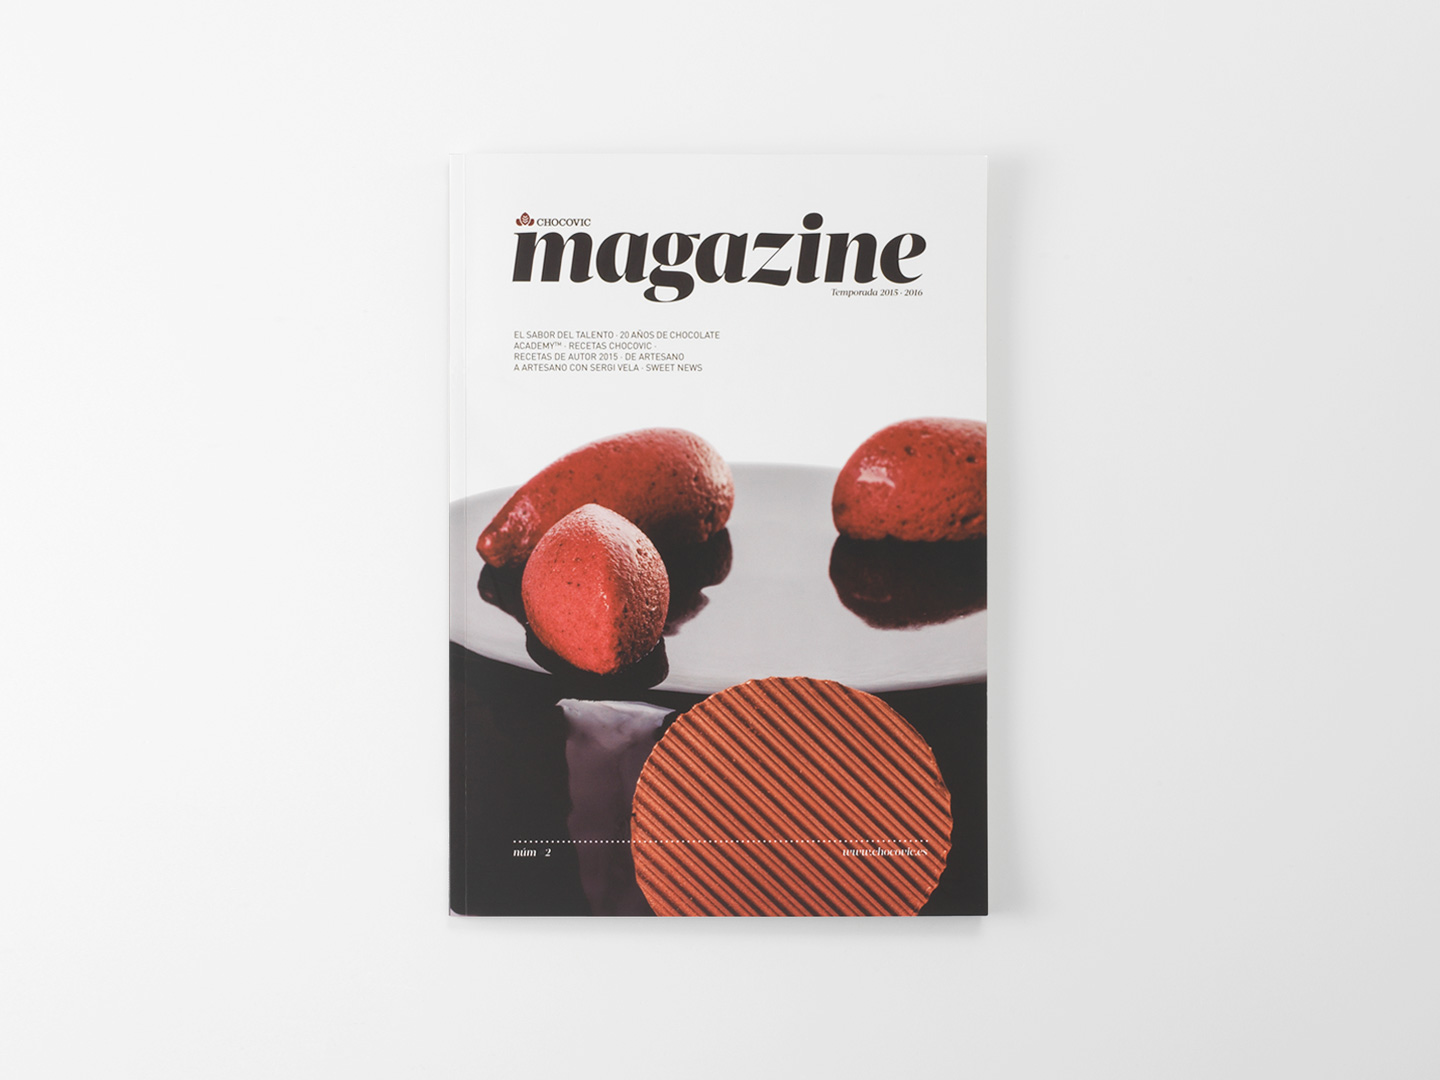 Cover of the Chocovic Magazine